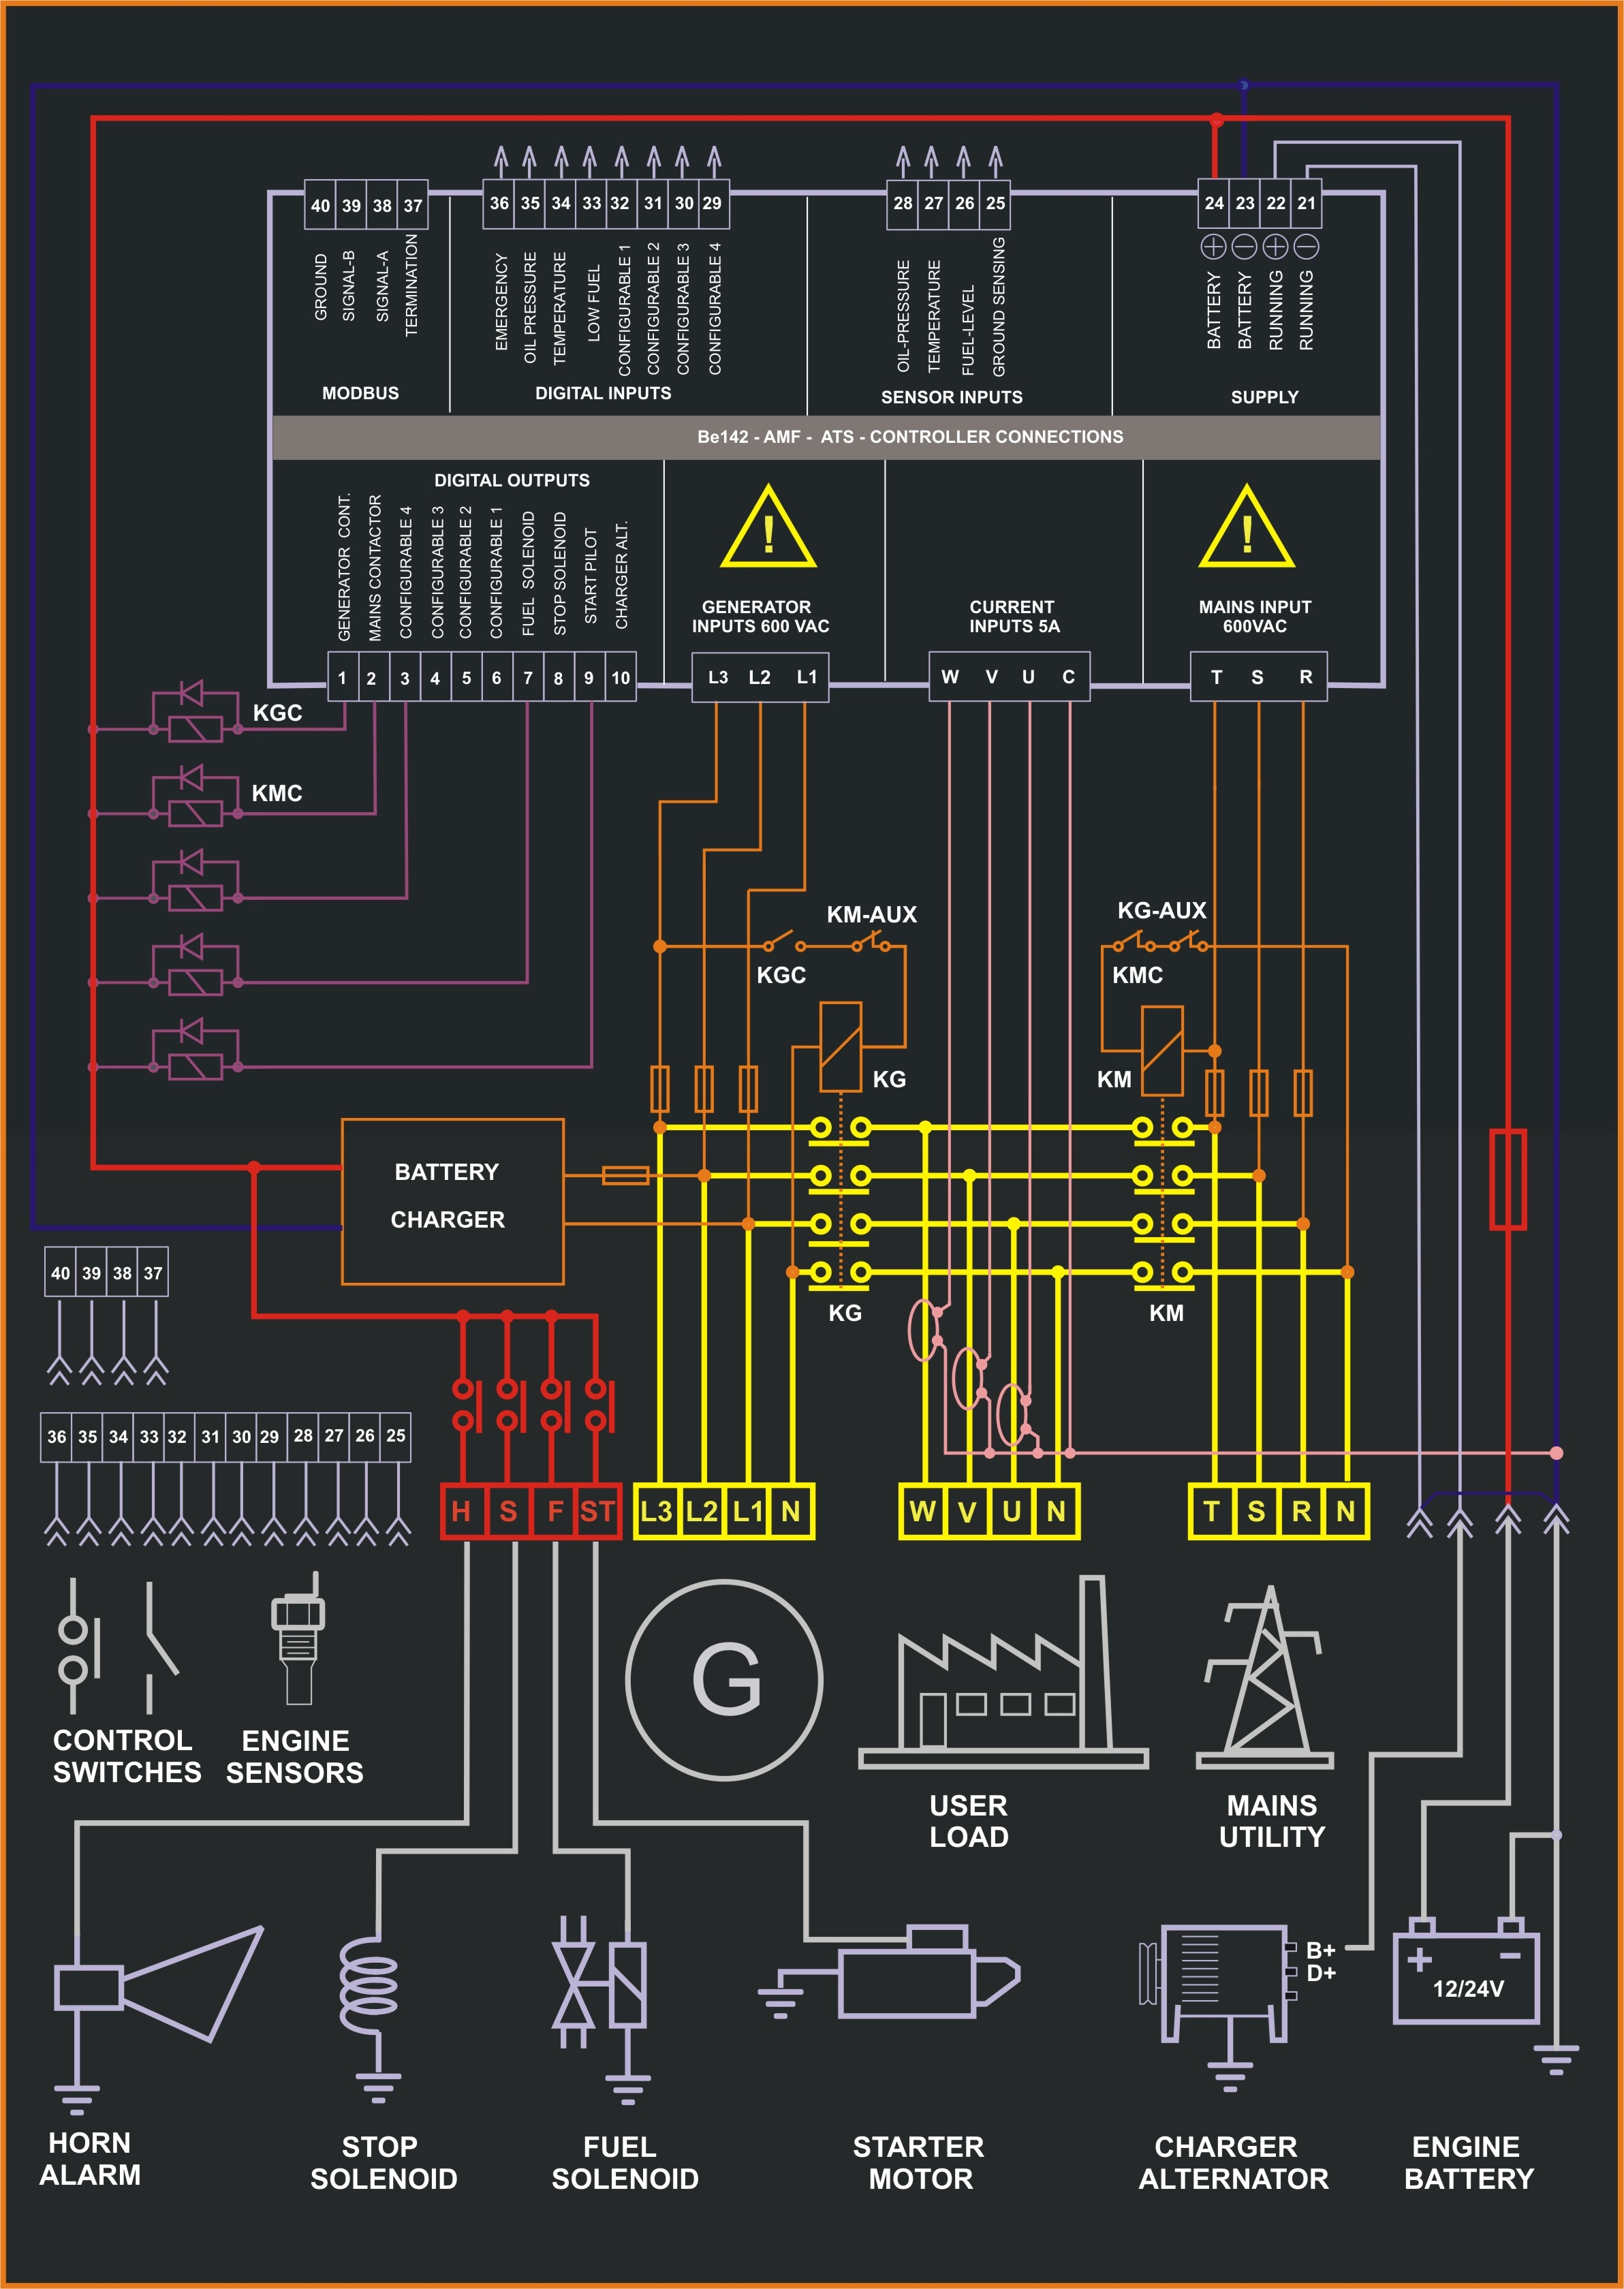 AMF Control Panel Circuit Diagram Be142 28 [ wiring diagram panel ats amf ] ats panel wiring diagram mcc wiring diagrams at n-0.co